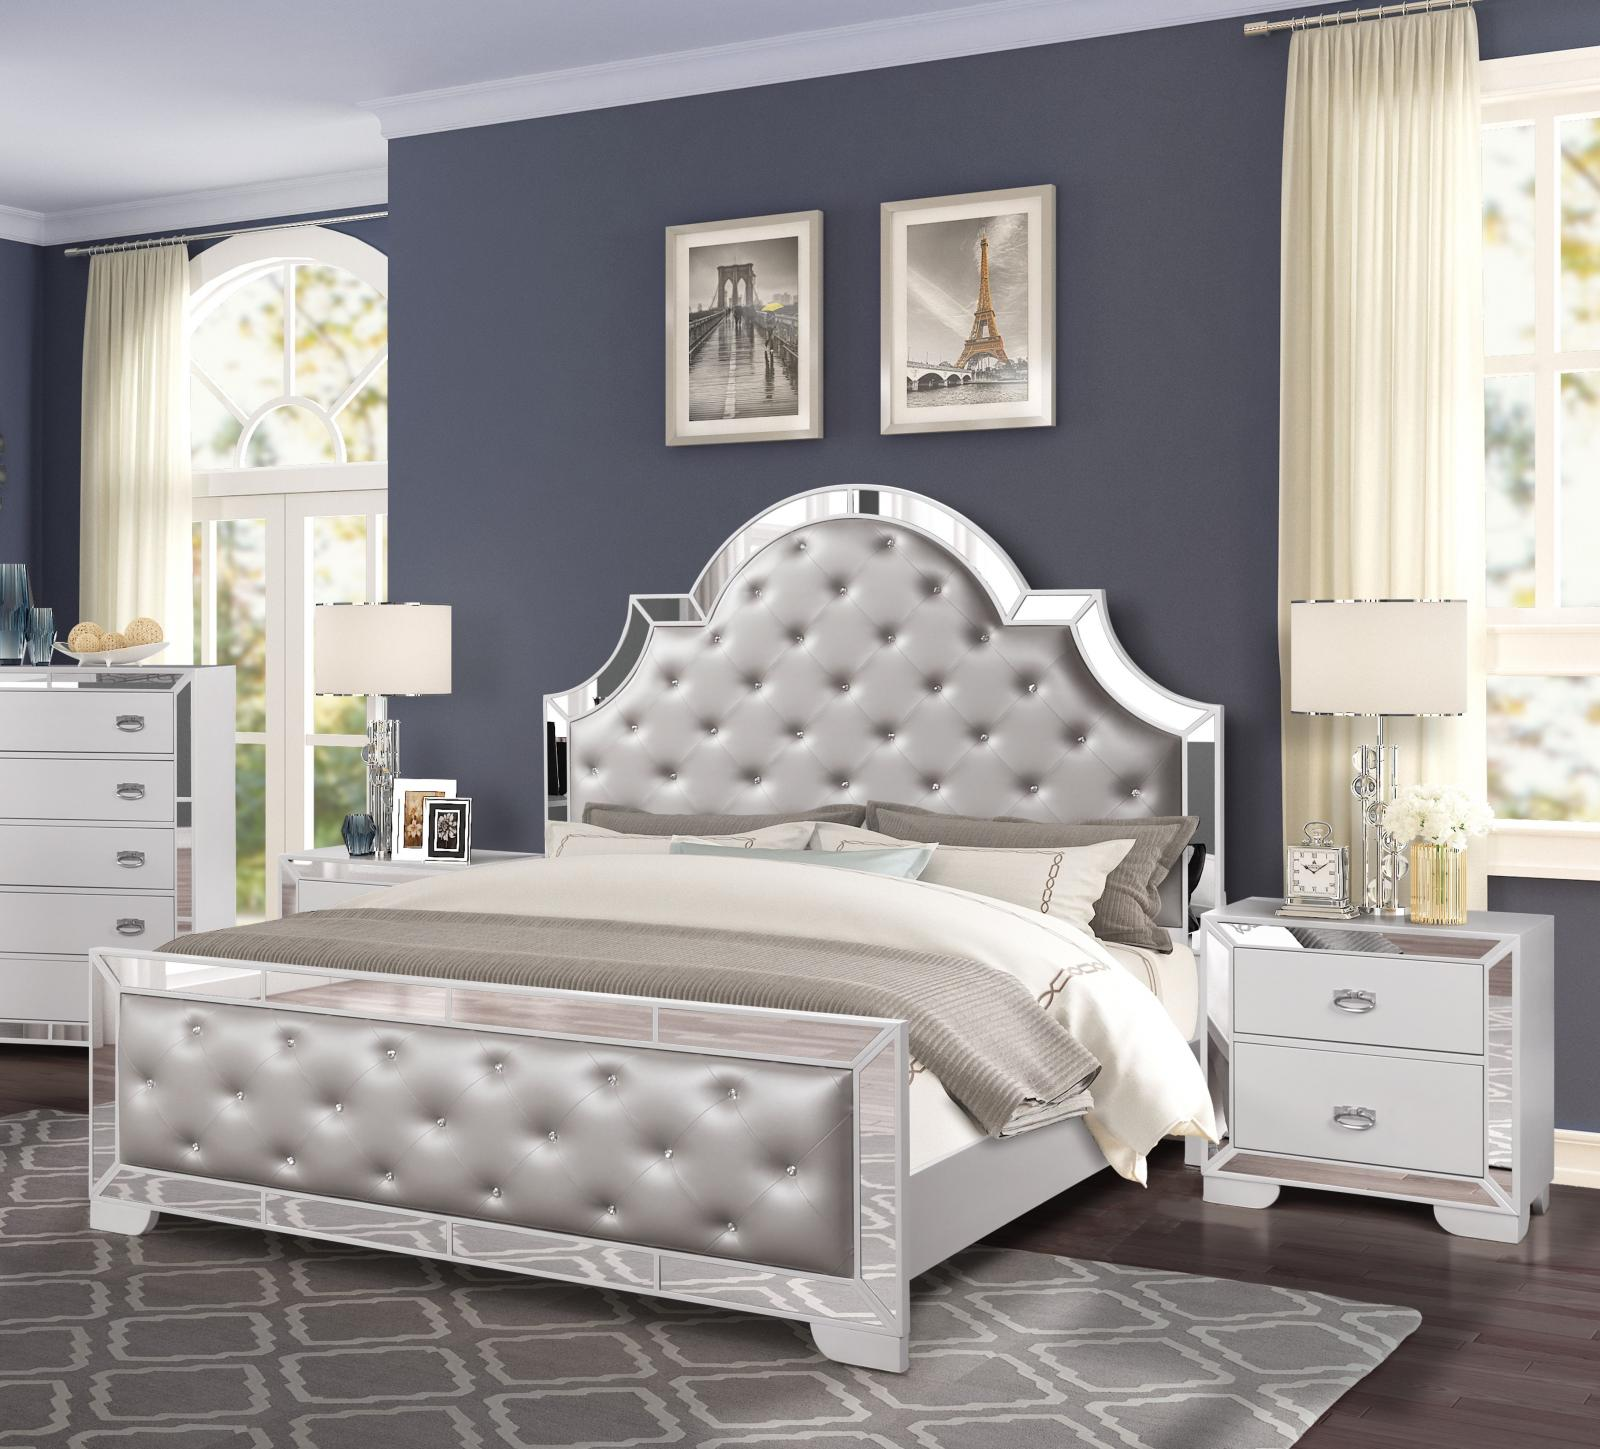 Contemporary White Faux Leather and Wood, Faux Leather King Panel Bedroom Set 3 pcs Grand Gloria by Cosmos Furniture